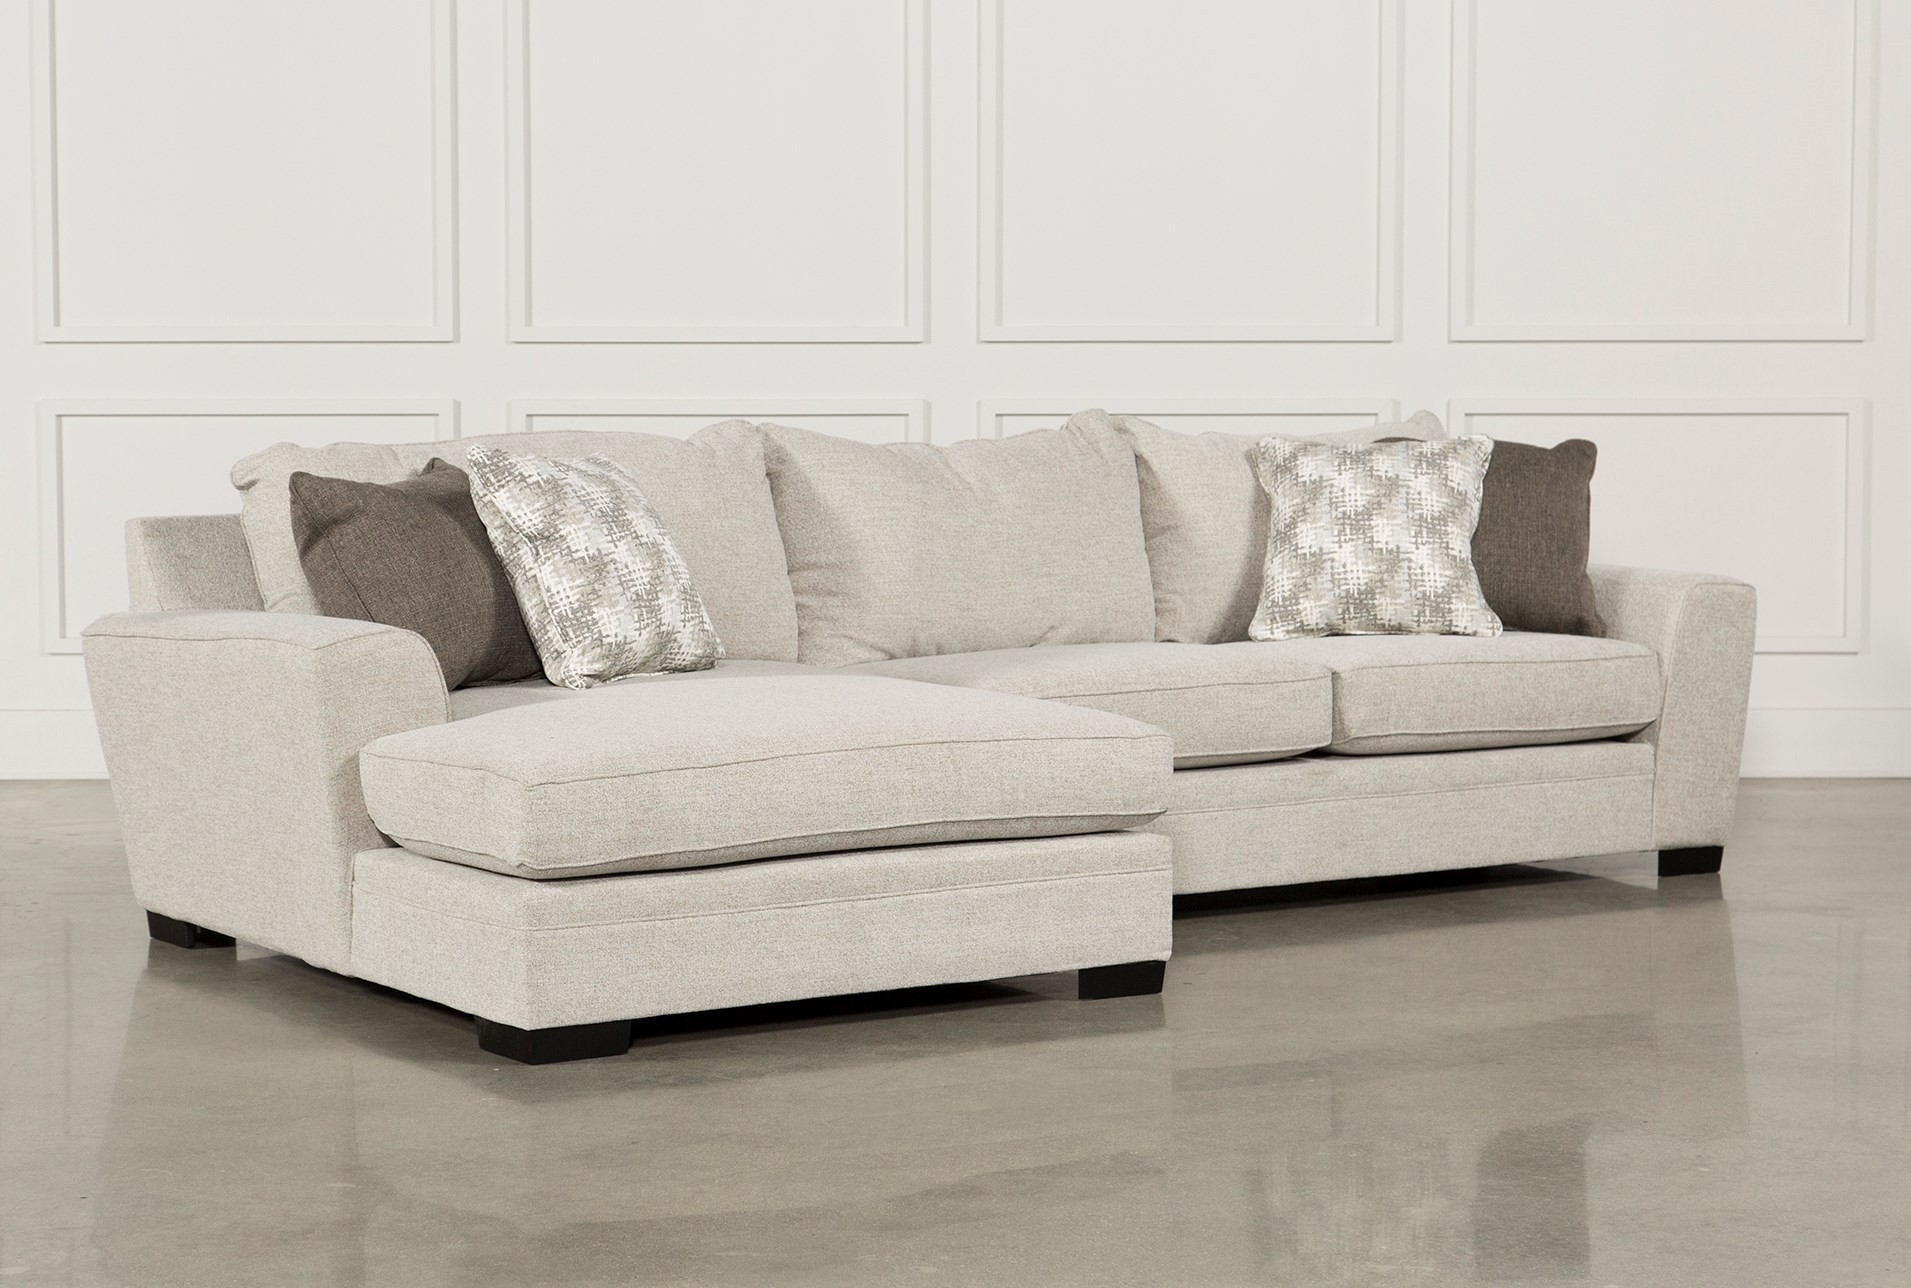 Living Spaces Sectional Couches Josephine 2 Piece W Raf Sofa 222882 With Regard To Josephine 2 Piece Sectionals With Raf Sofa (Image 15 of 25)